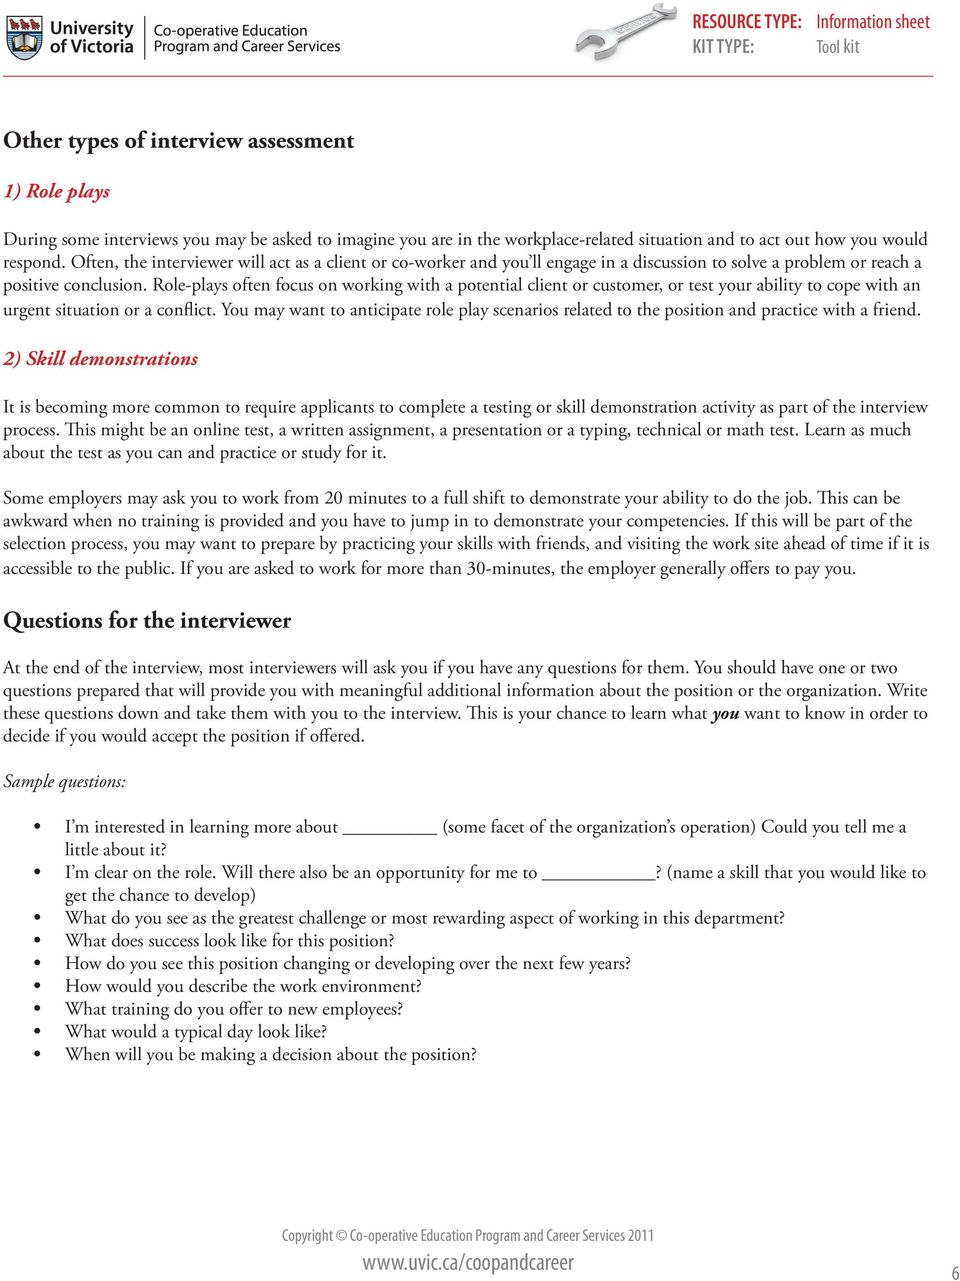 HOW TO RESPOND TO INTERVIEW QUESTIONS - PDF